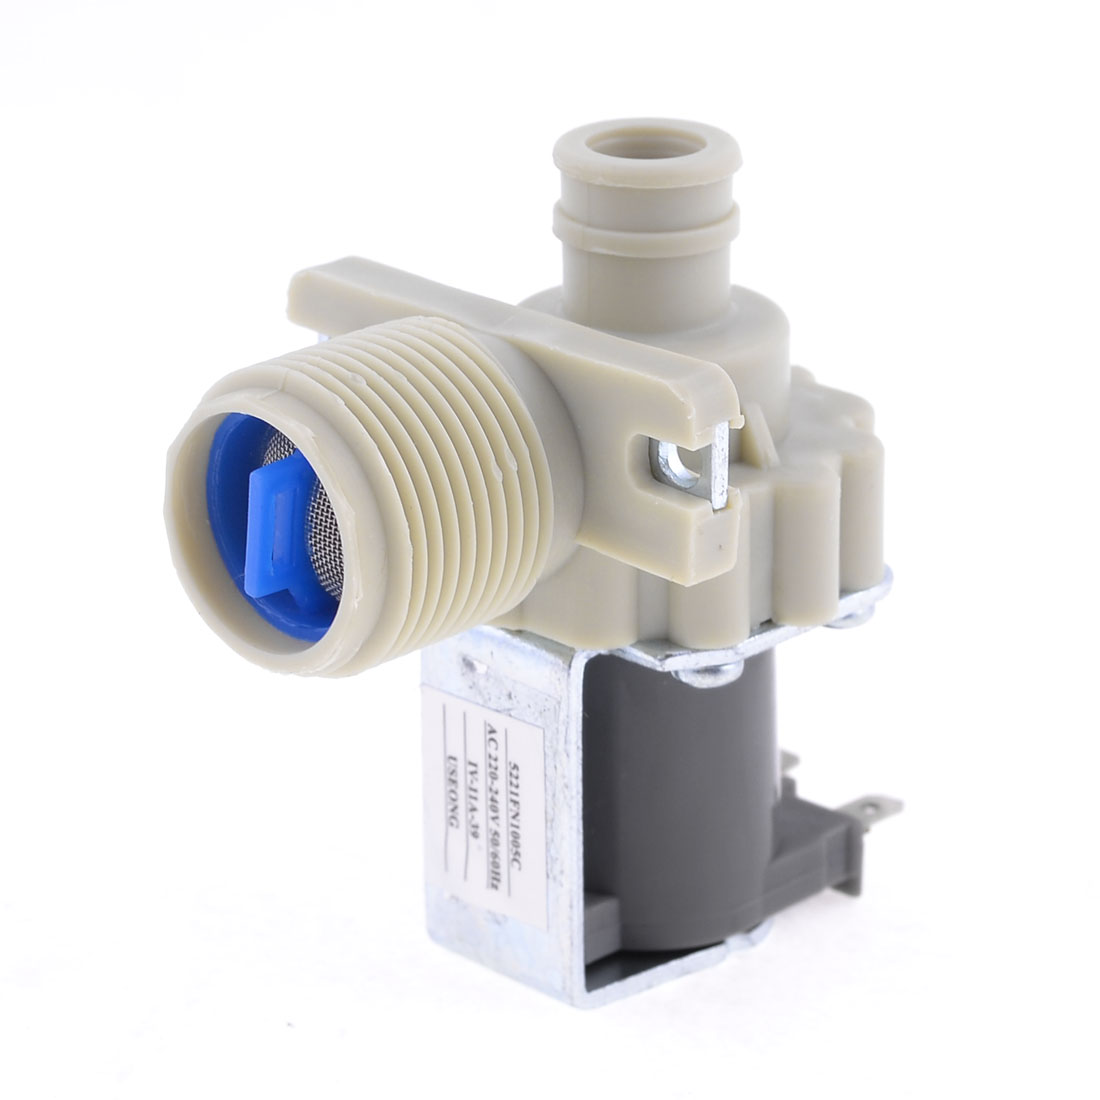 AC 220-240V 2 Terminal 26mm Thread Water Inlet Solenoid Valve for LG Washing Machine